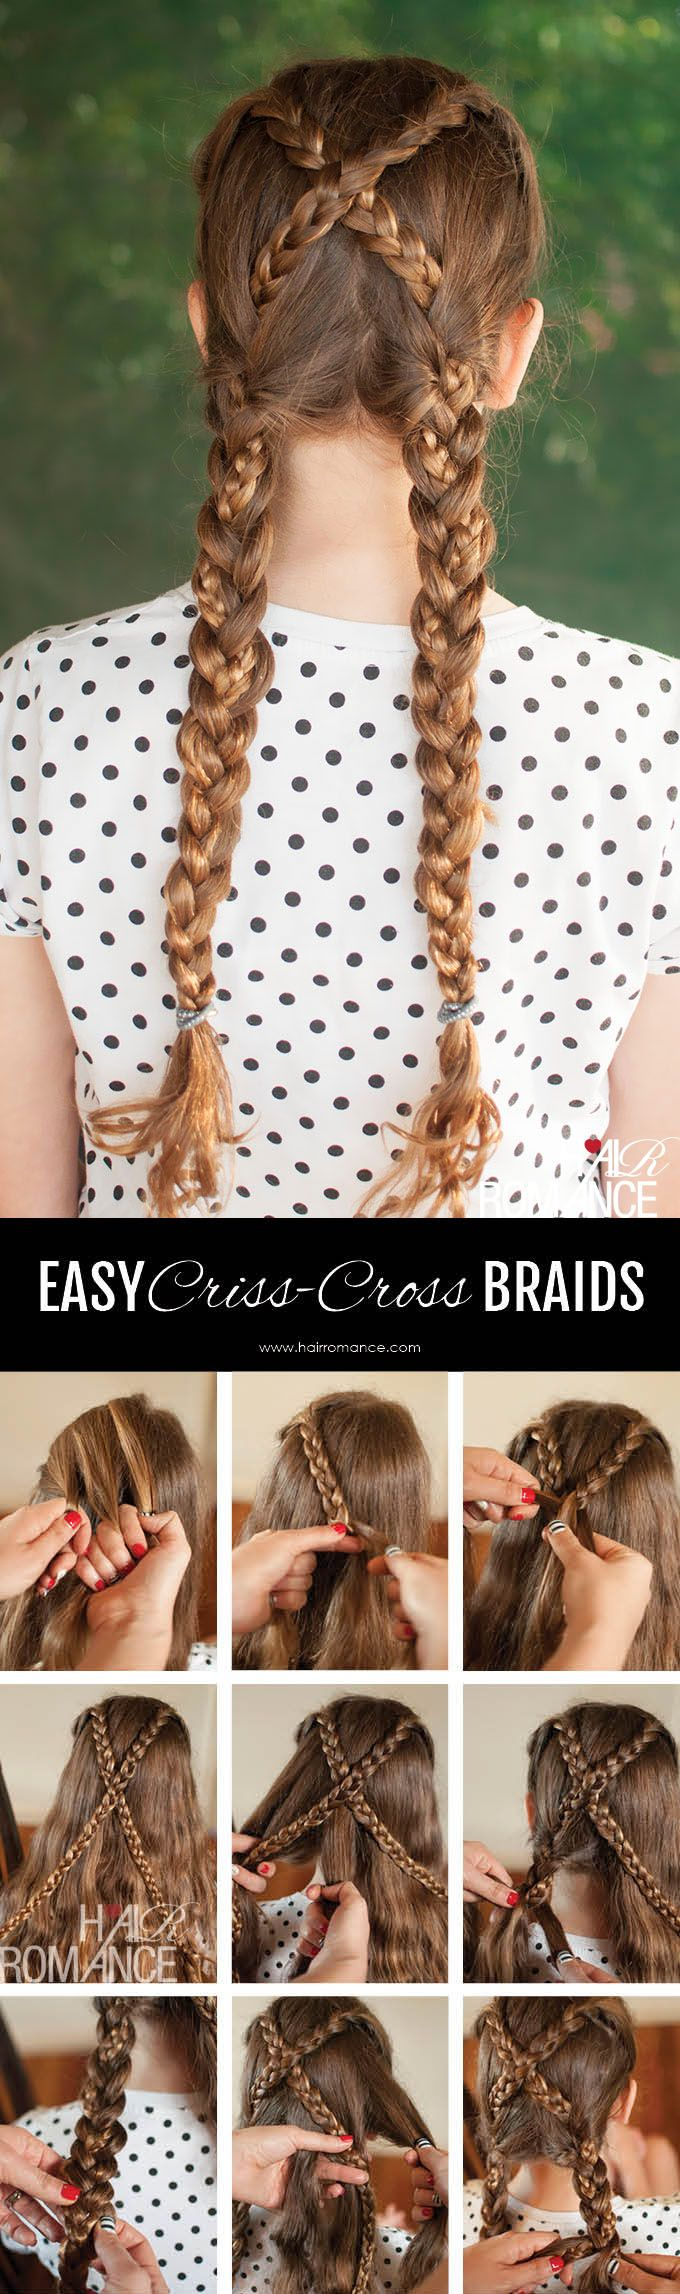 Back to school hairstyles - Criss cross braids tutorial - Hair Romance